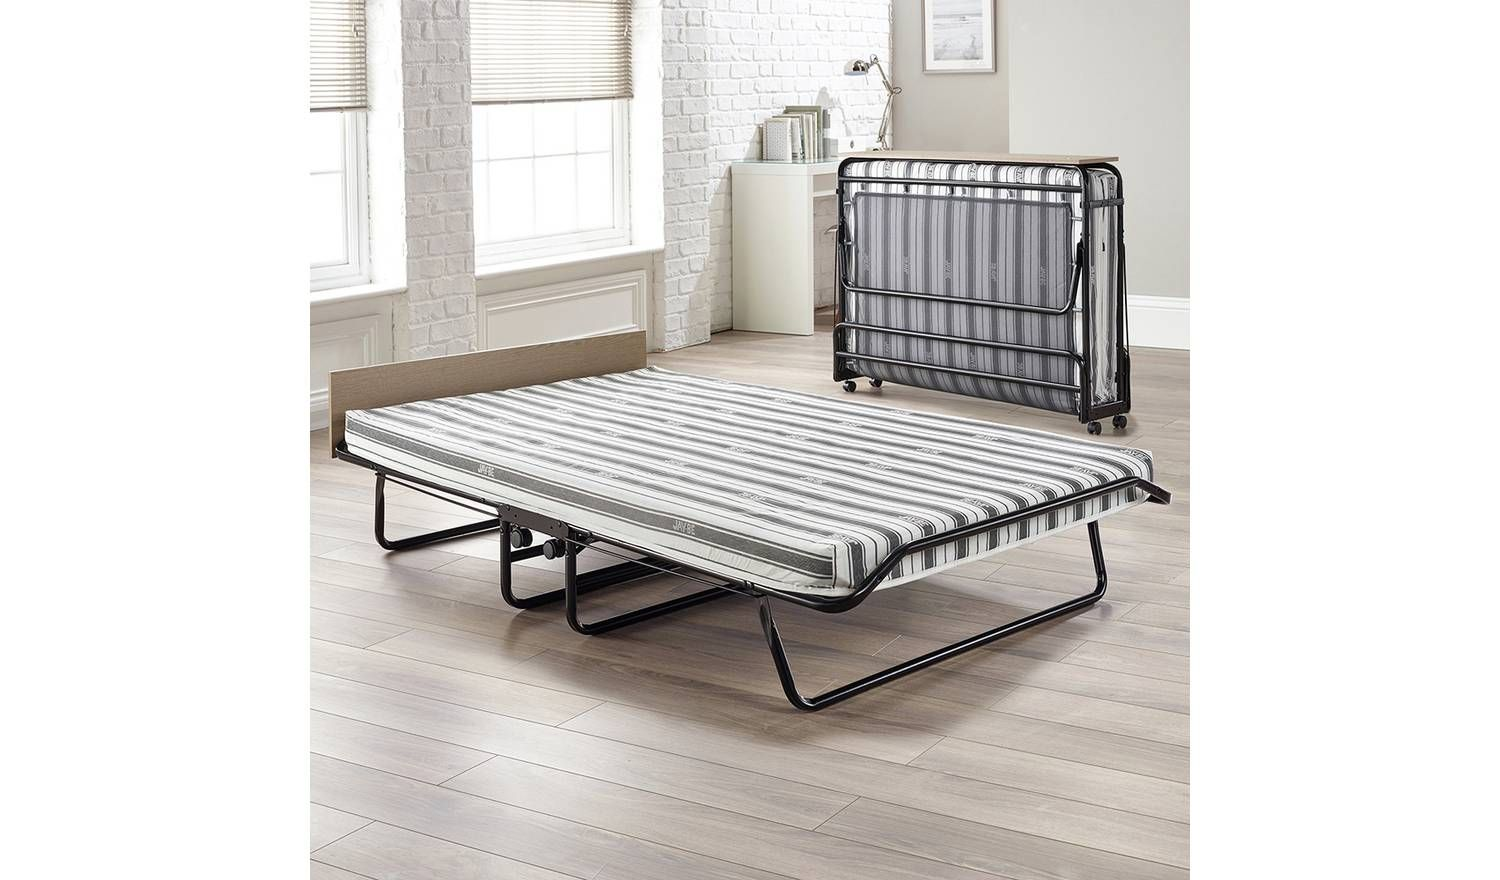 Buy JAYBE Auto Small Double Folding Bed with Airflow